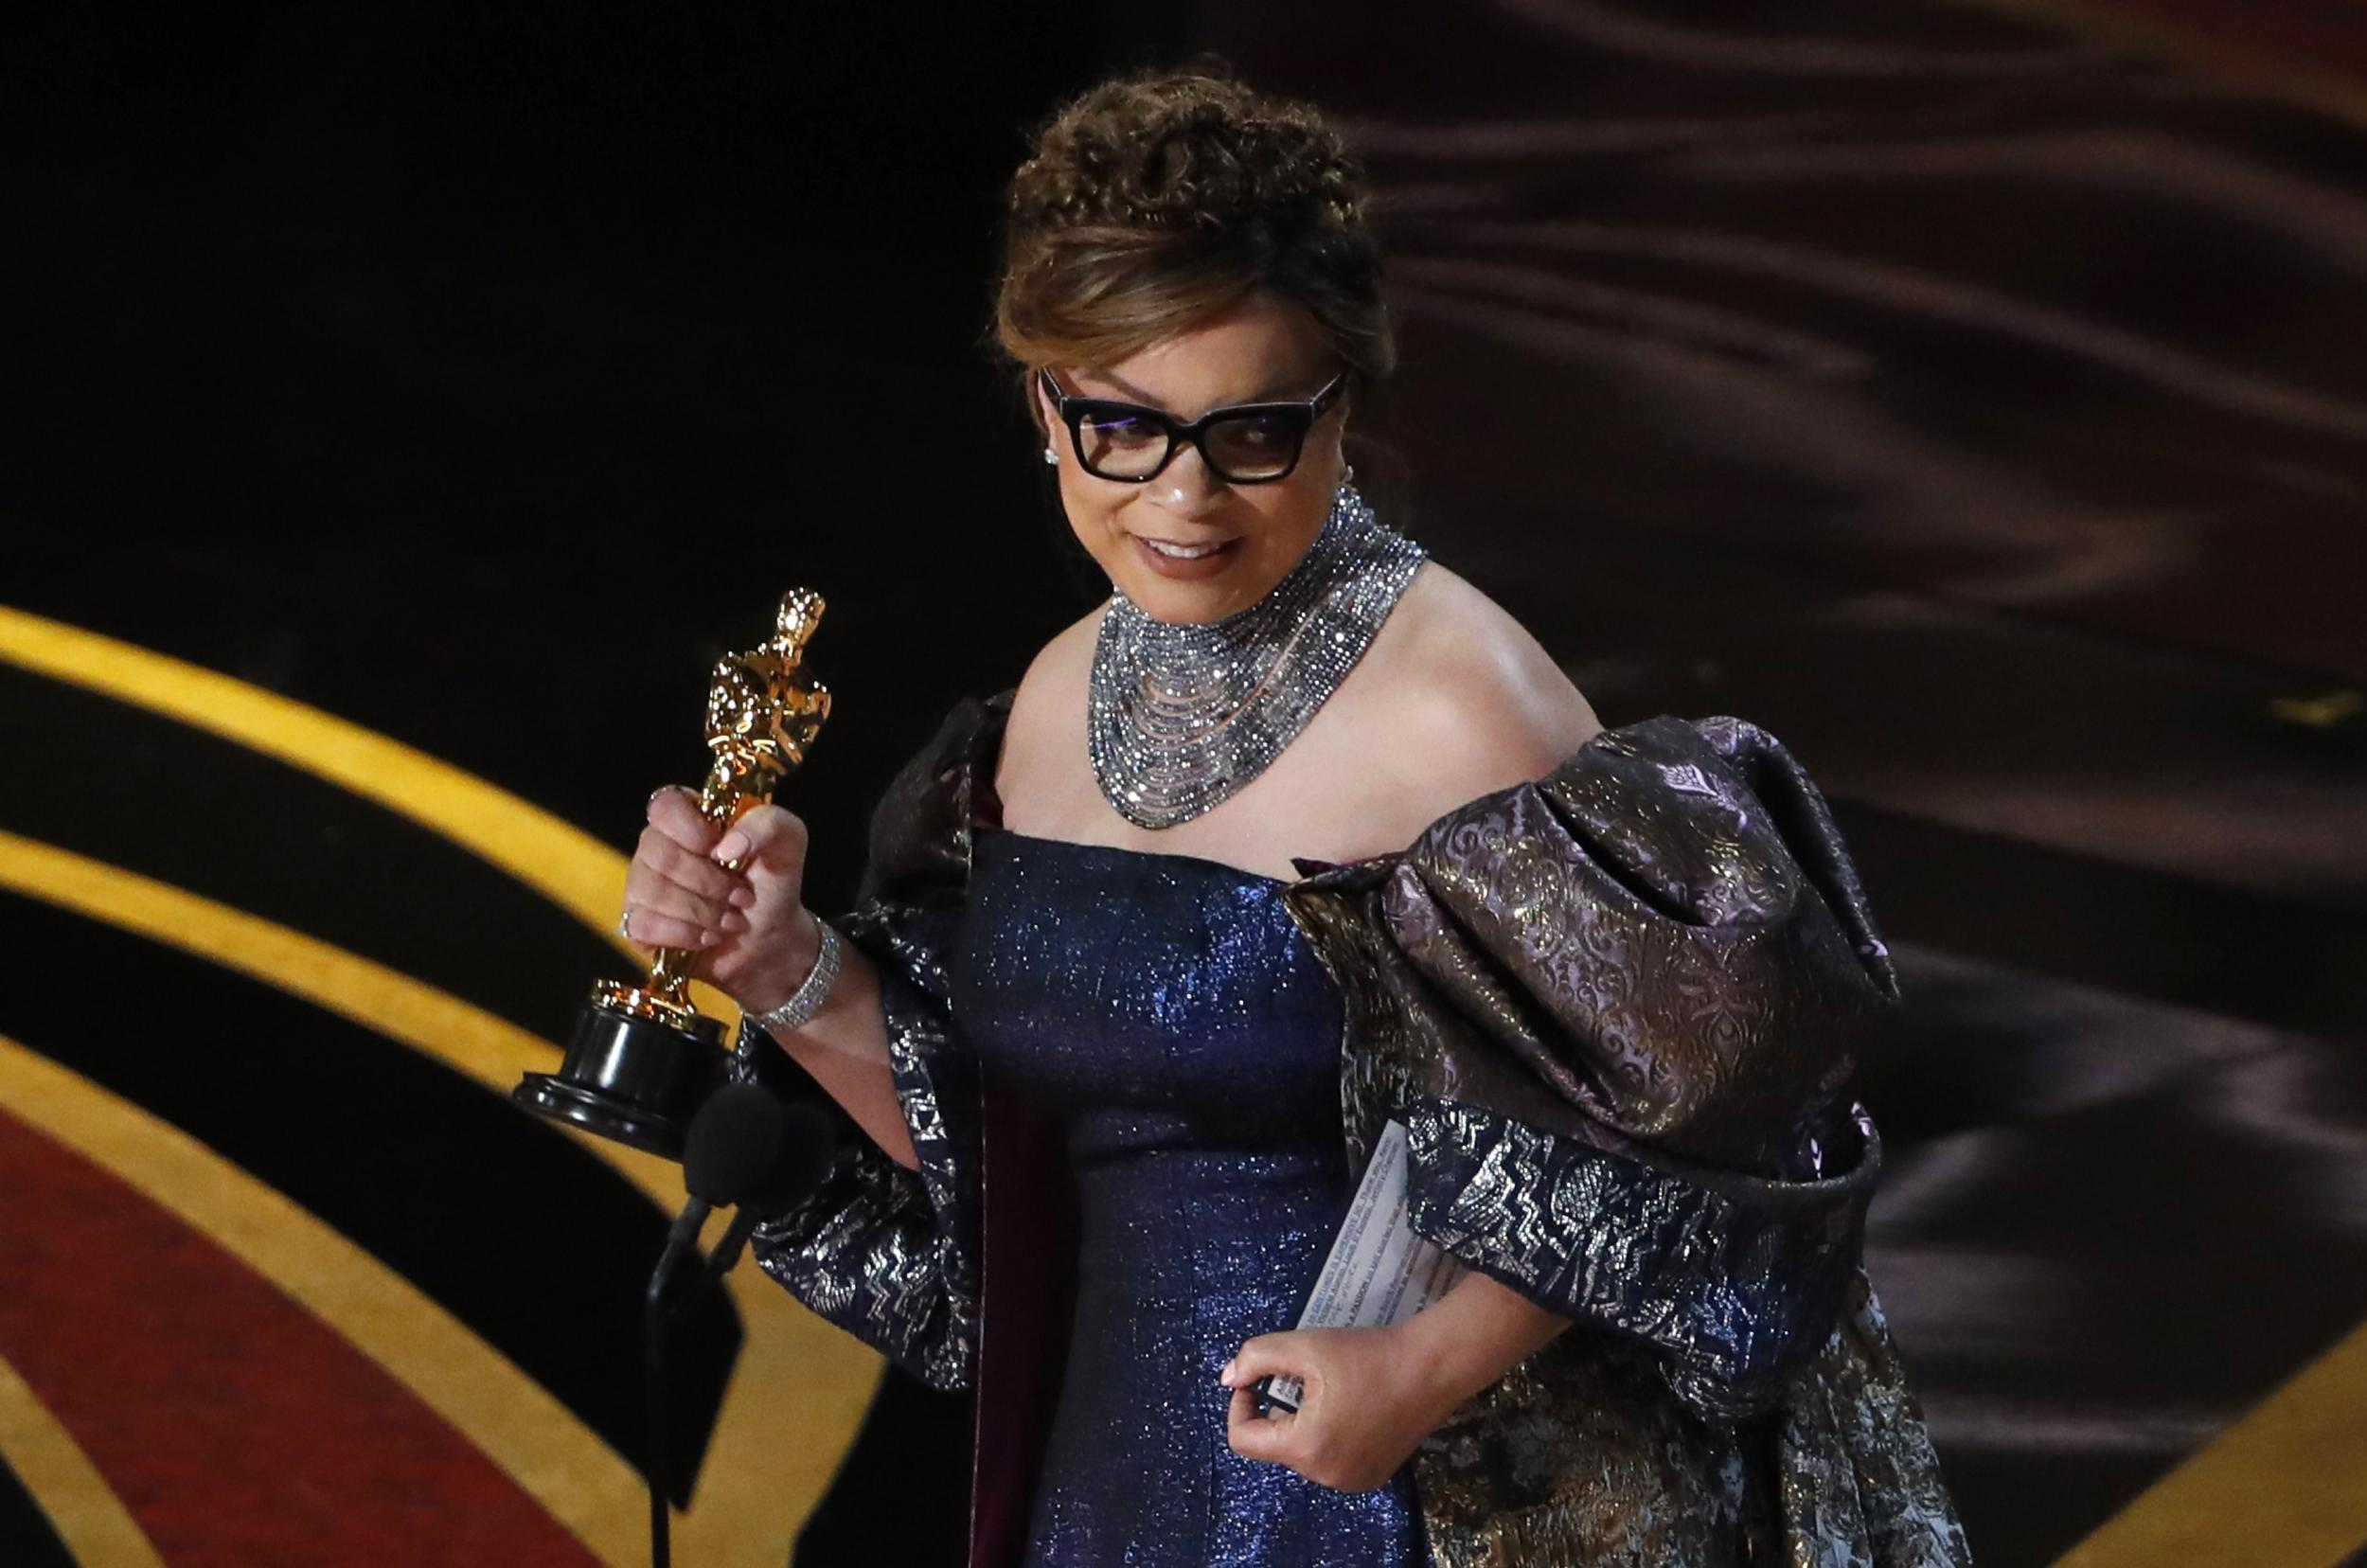 Oscars 2019 Ruth Carter Becomes First Ever Black Winner For Best Costume Design The Independent Independent